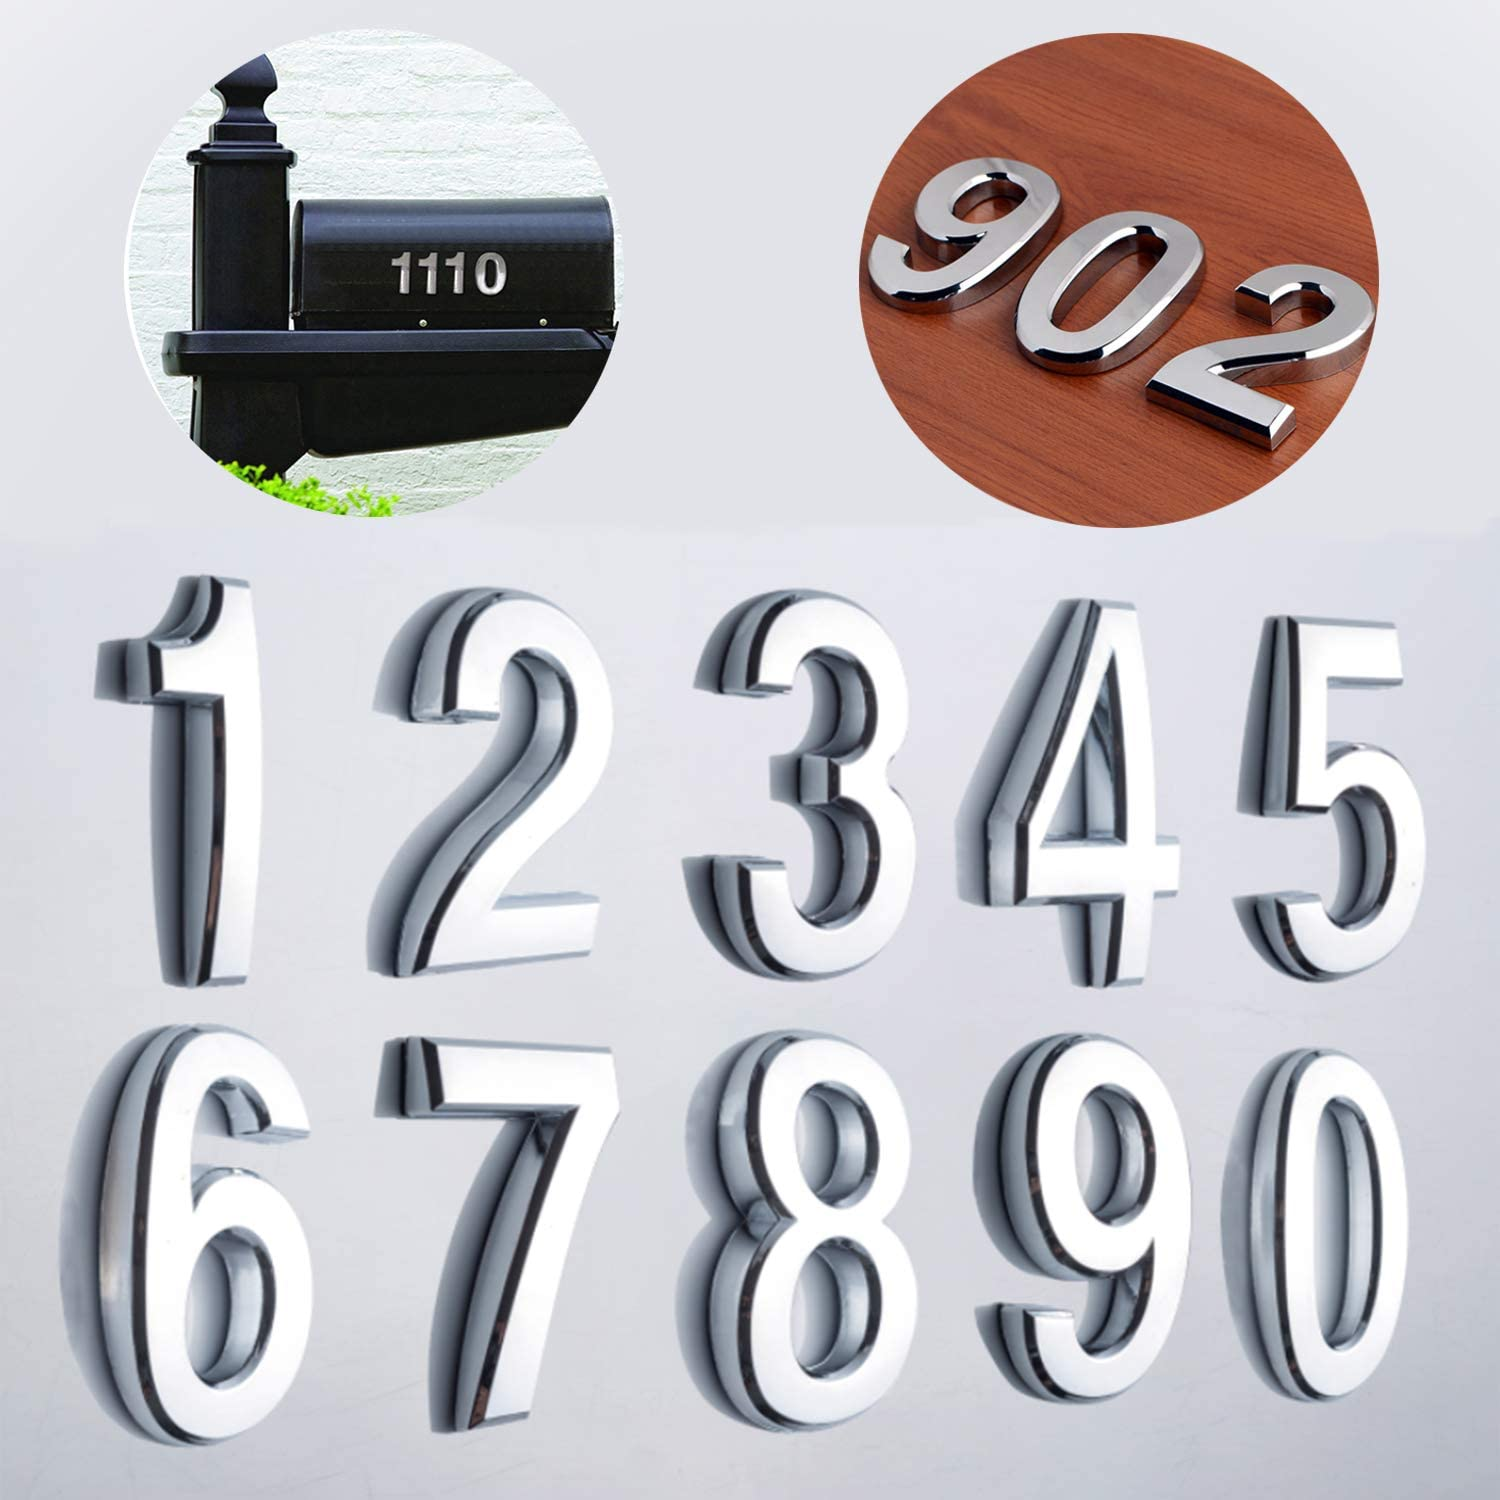 """10 Pack 2-3/4""""(Pack 0 to 9, Shiny Silver) self Adhesive Door House Numbers and Street Address Plaques Numbers for Residence and Mailbox Signs. (2-3/4"""" 10 Pack (0-9), Silver)"""